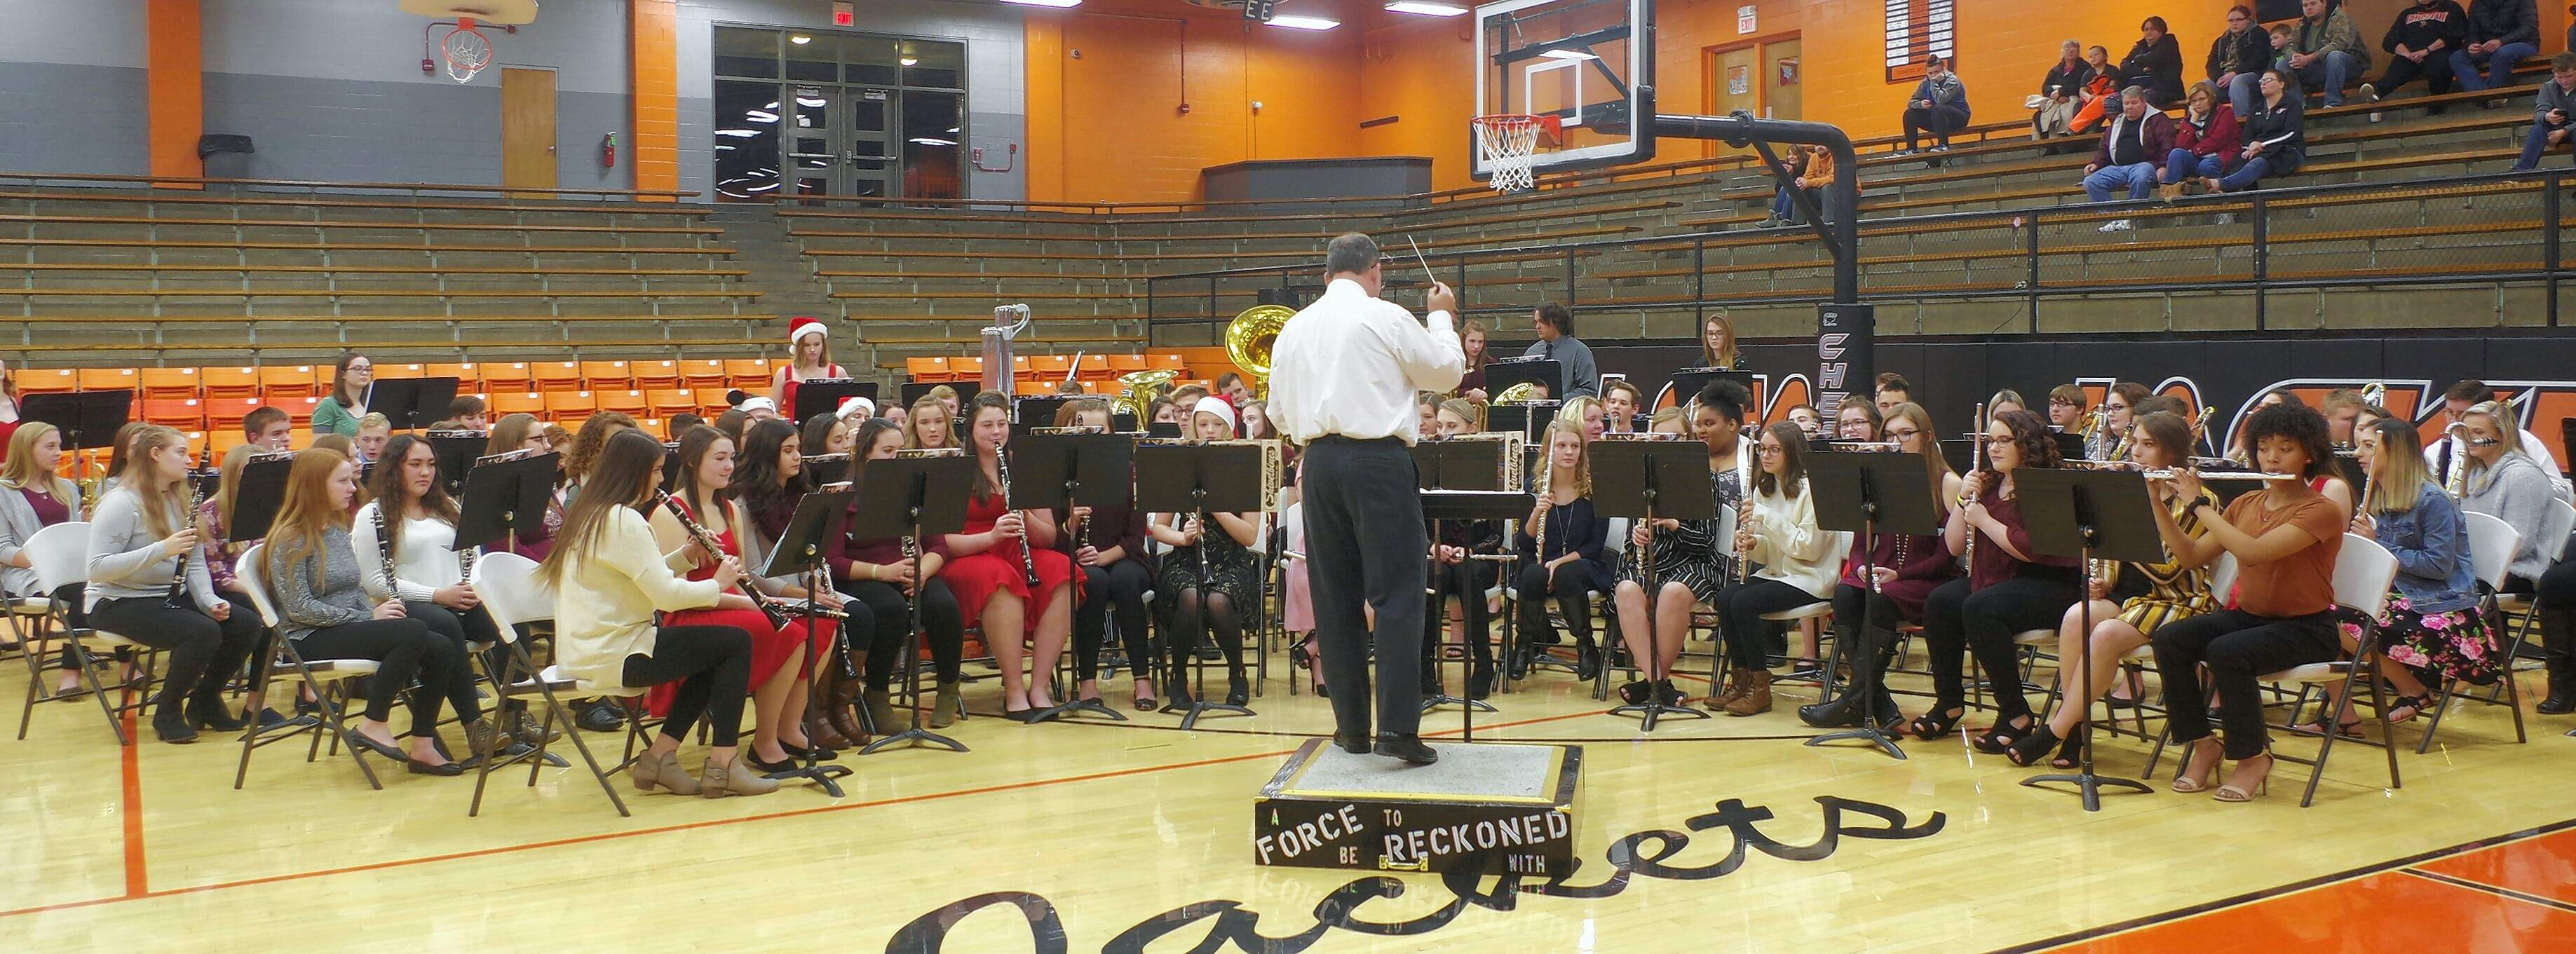 Steve Colonel, on podium, directs the Chester High School Concert Band.